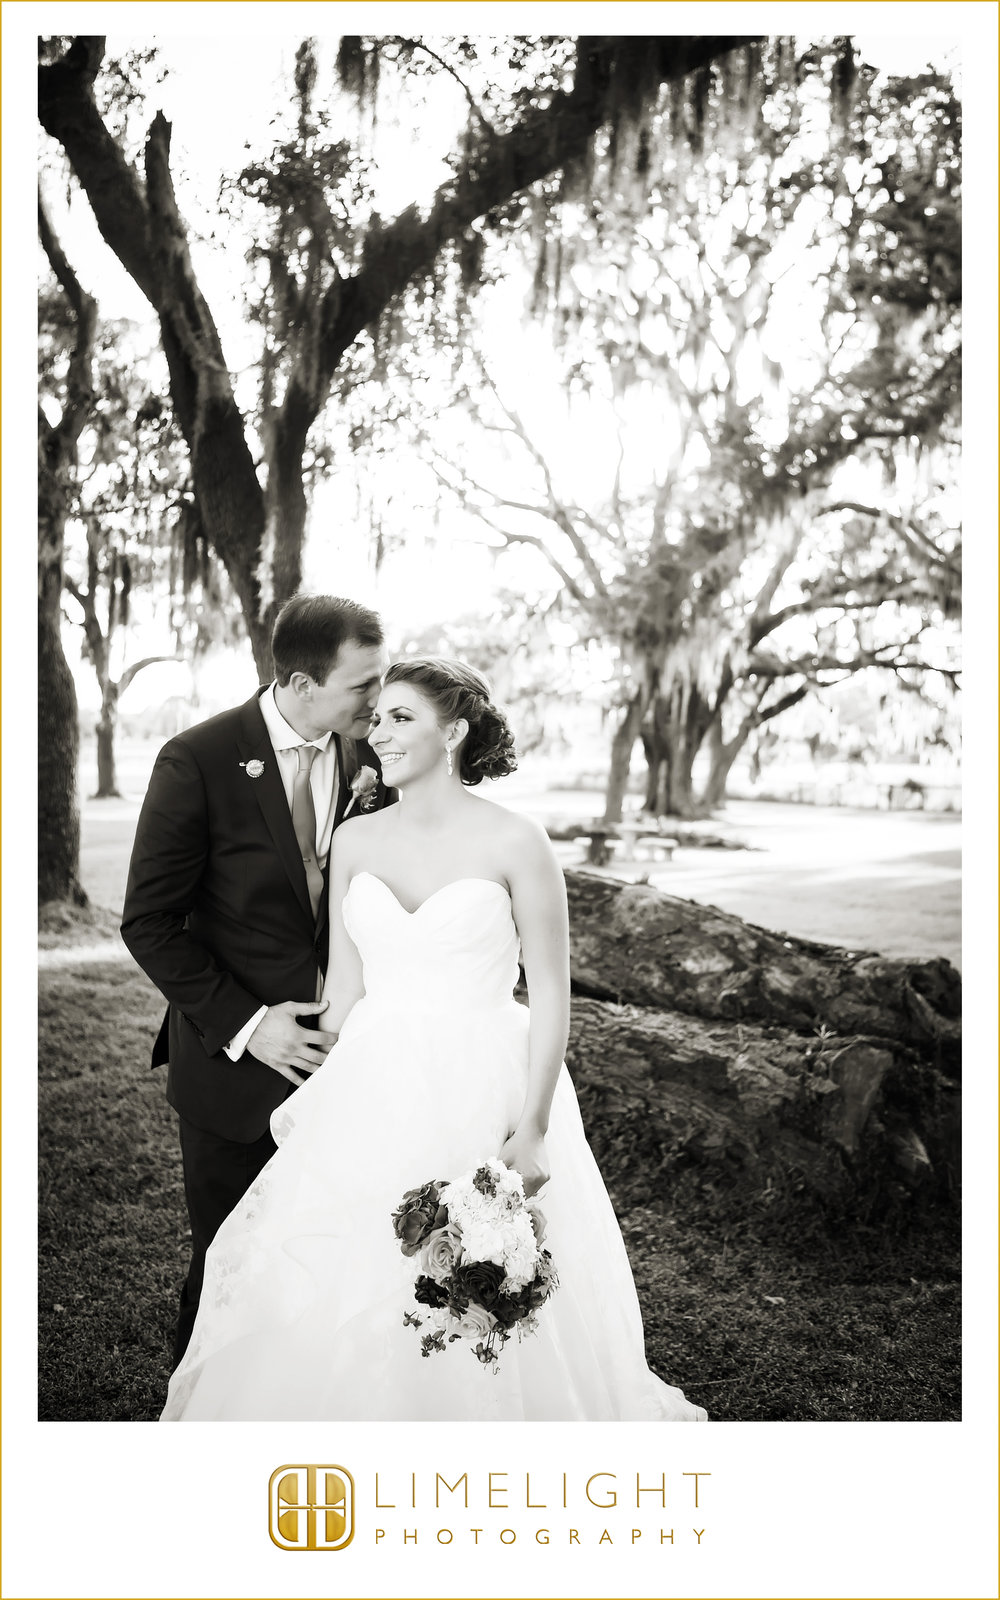 Portraits | Mr. & Mrs. | Wedding